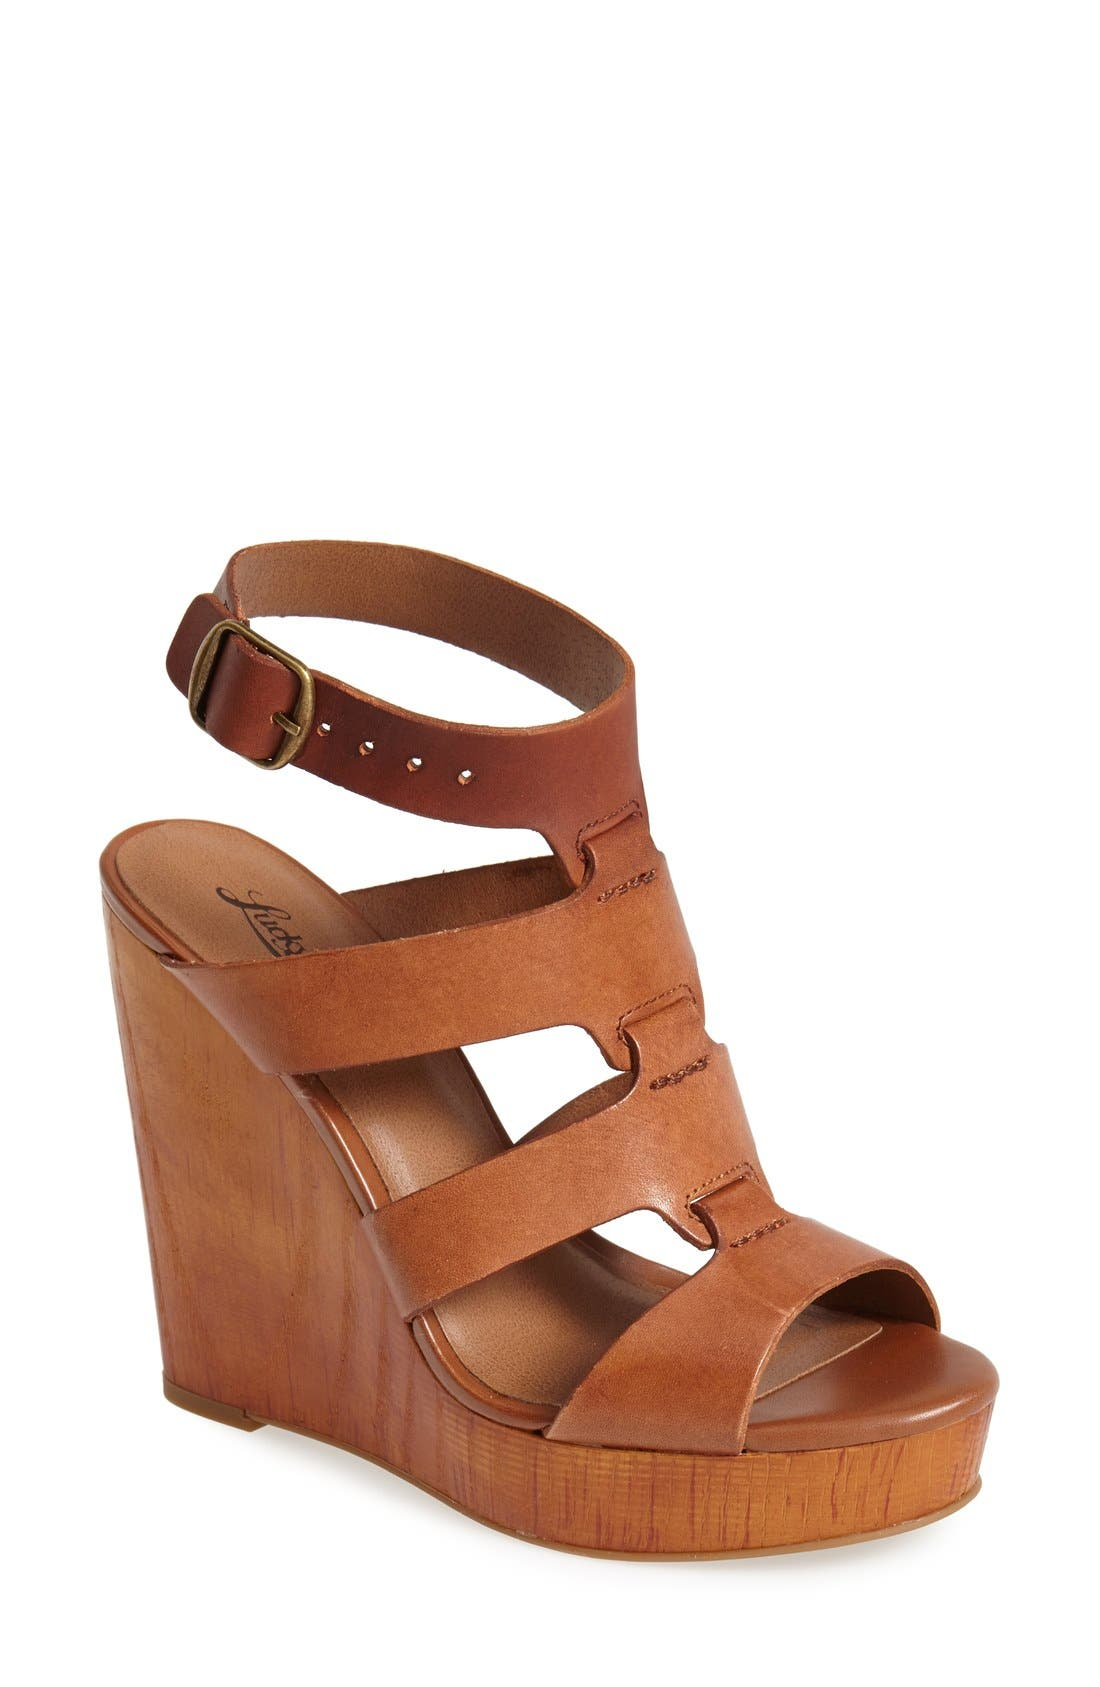 Main Image - Lucky Brand 'Roselyn' Leather Caged Platform Sandal (Women)